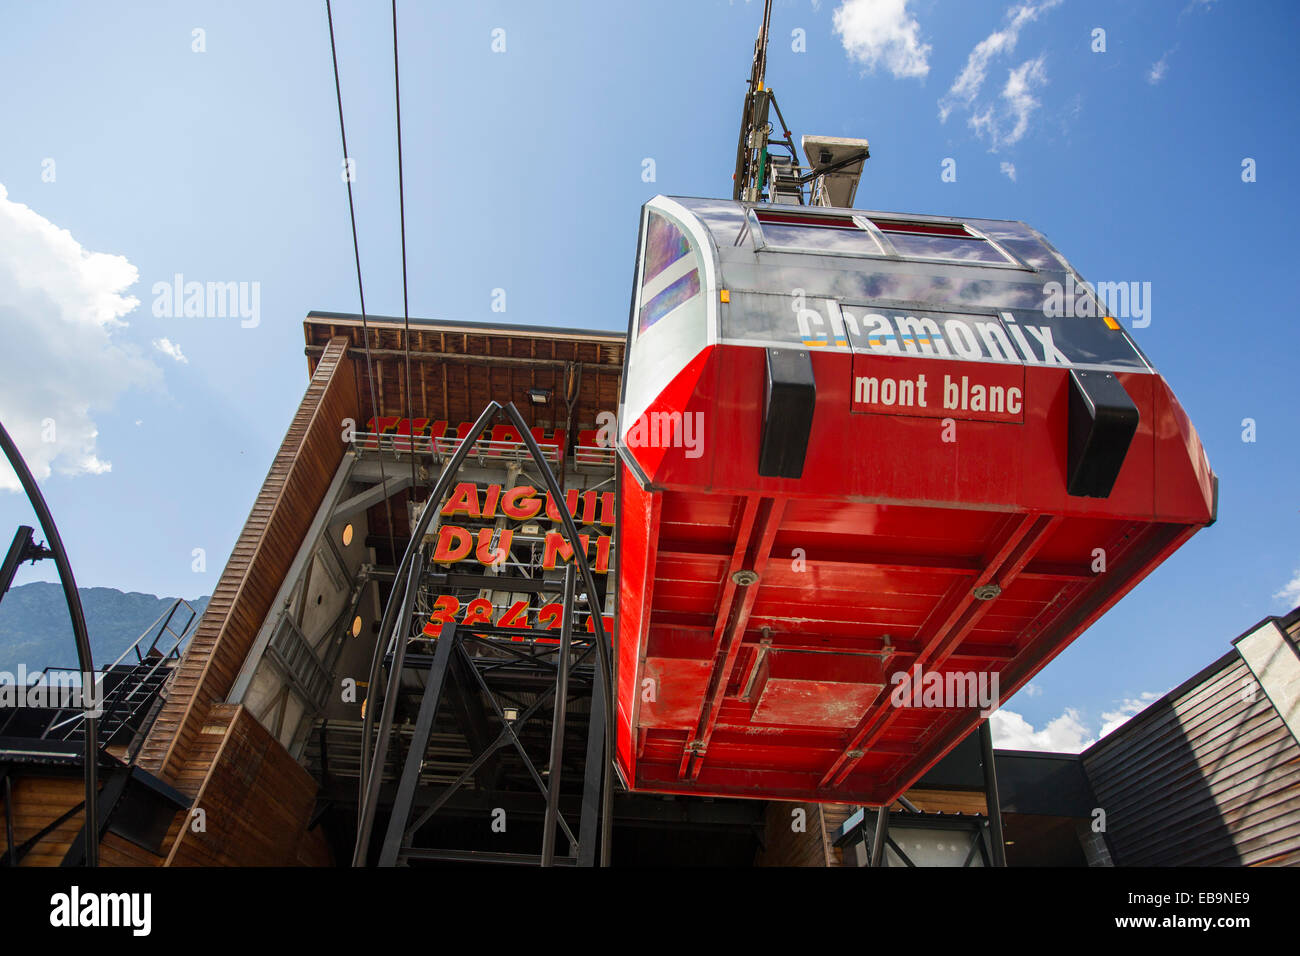 The Aiguille Du Midi cable car above Chamonix, France. - Stock Image